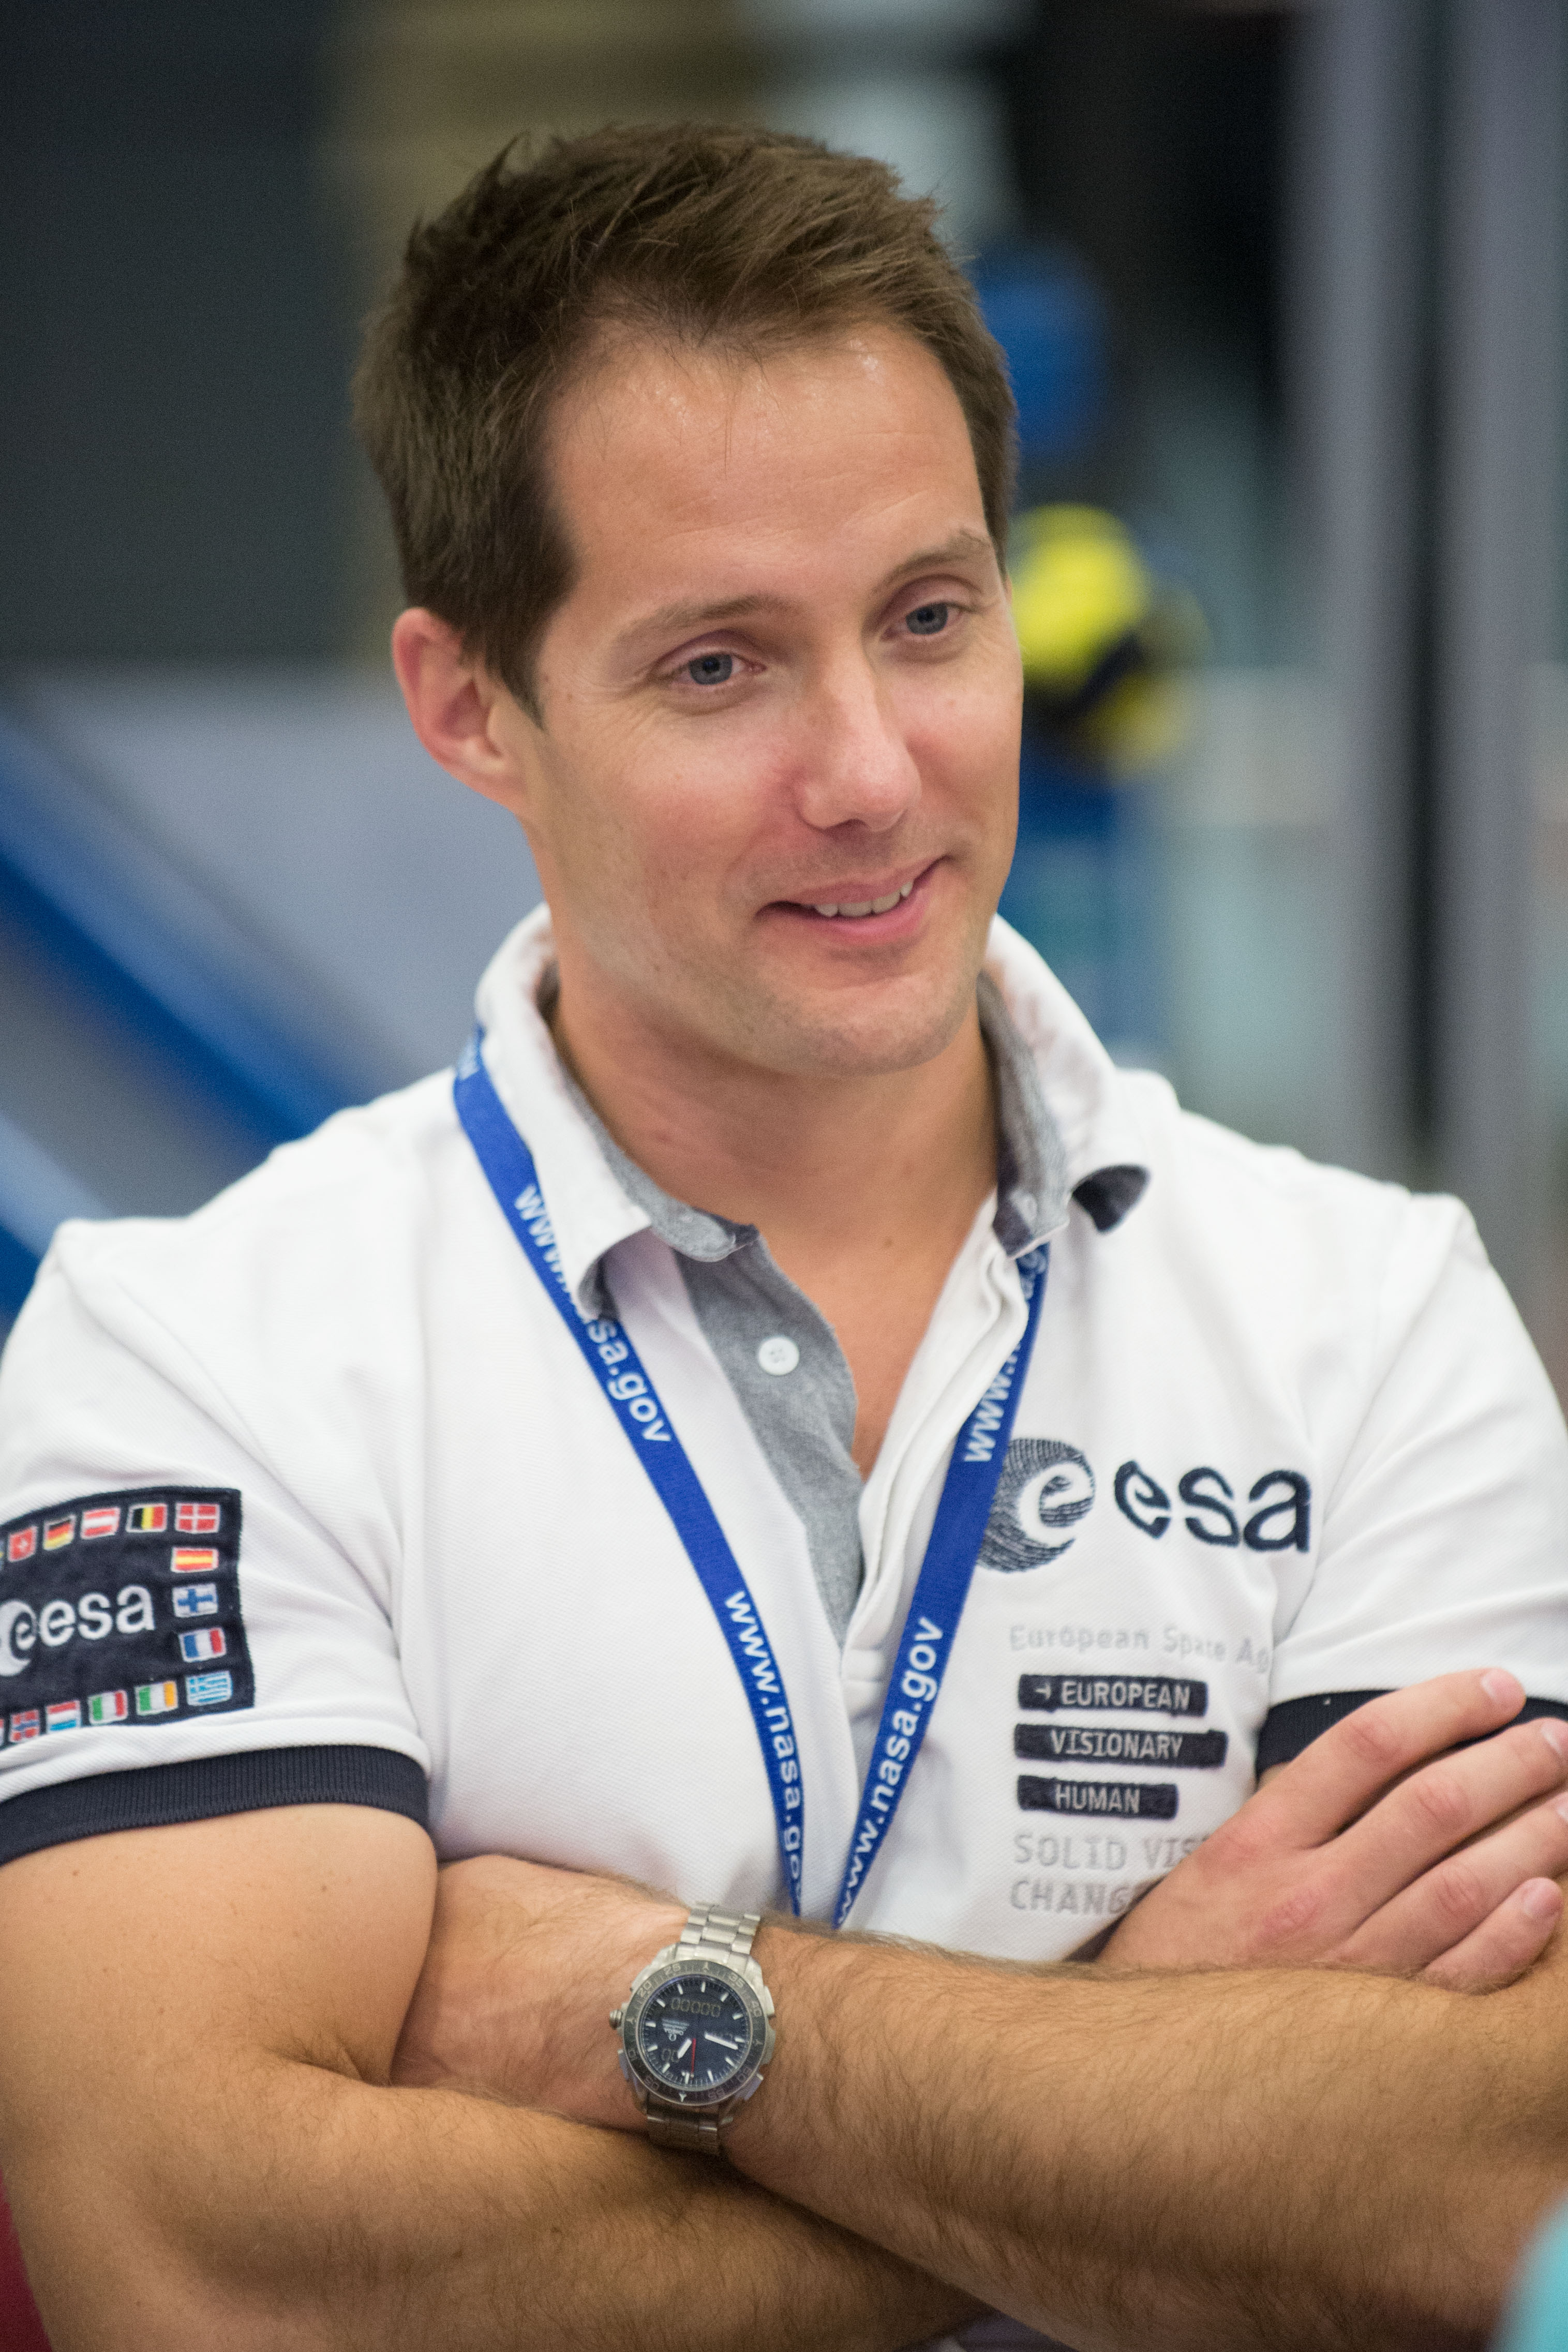 esa int - photo #34